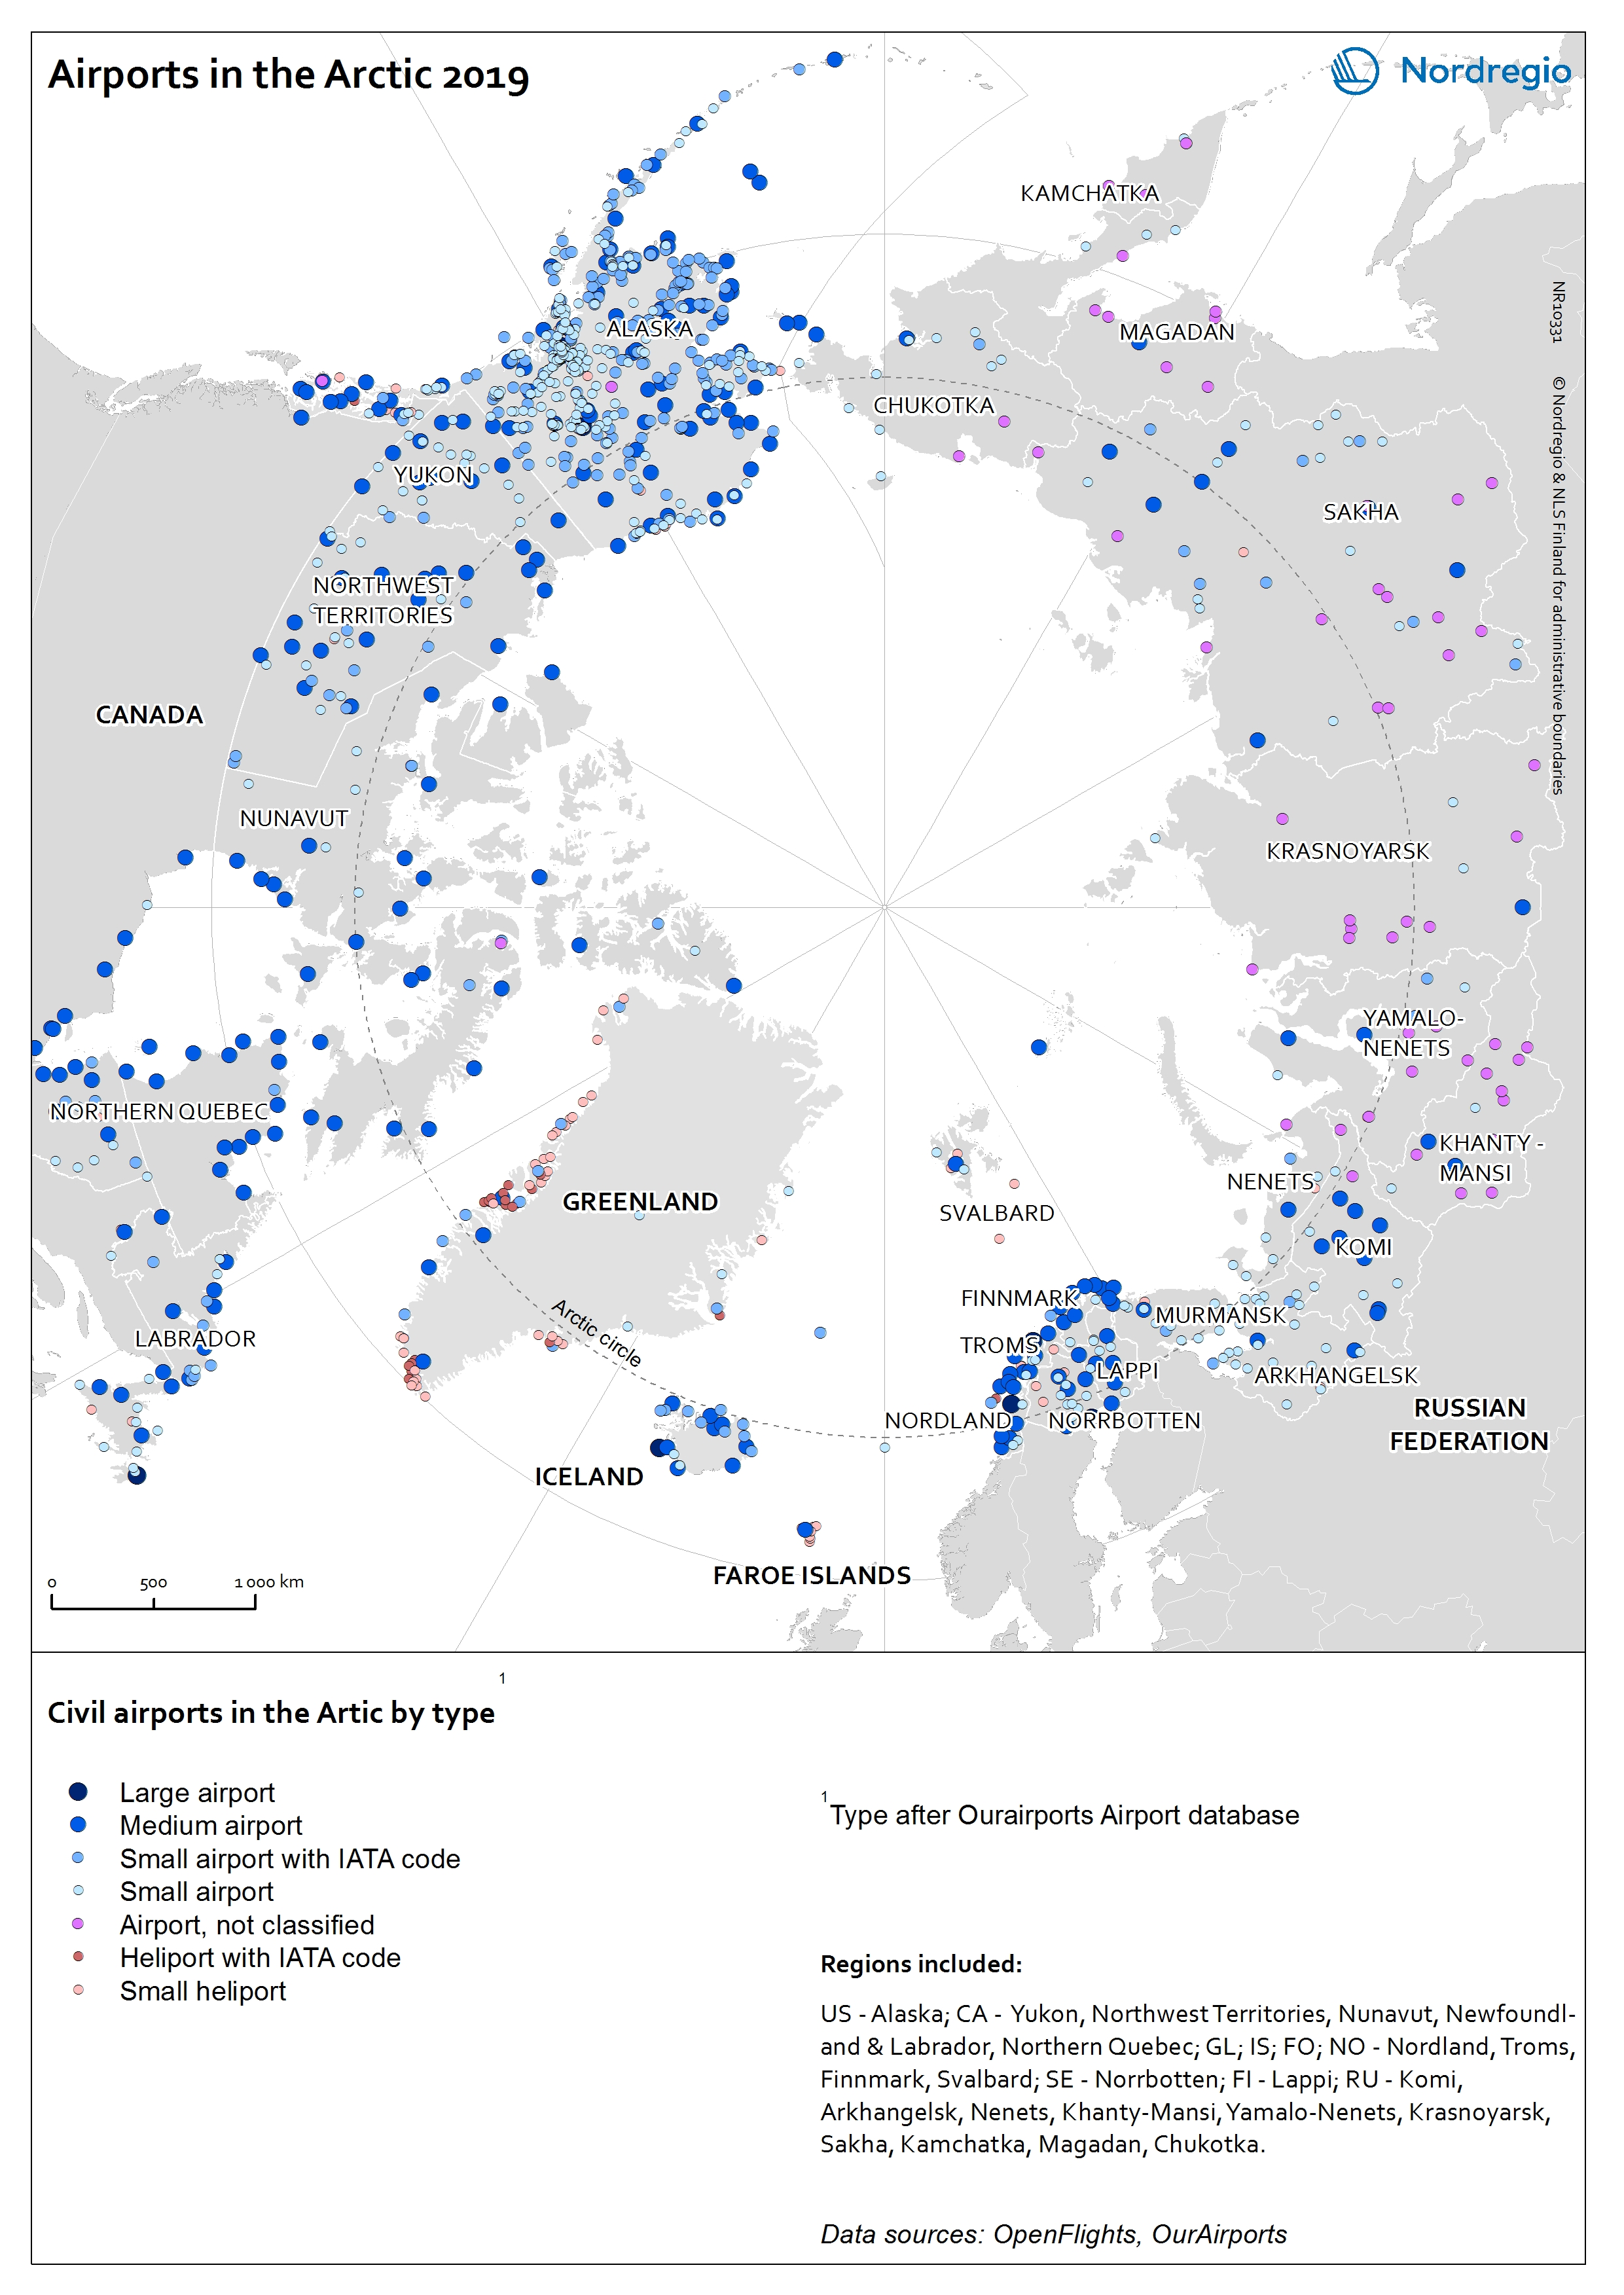 Airports in the Arctic 2019 | Nordregio